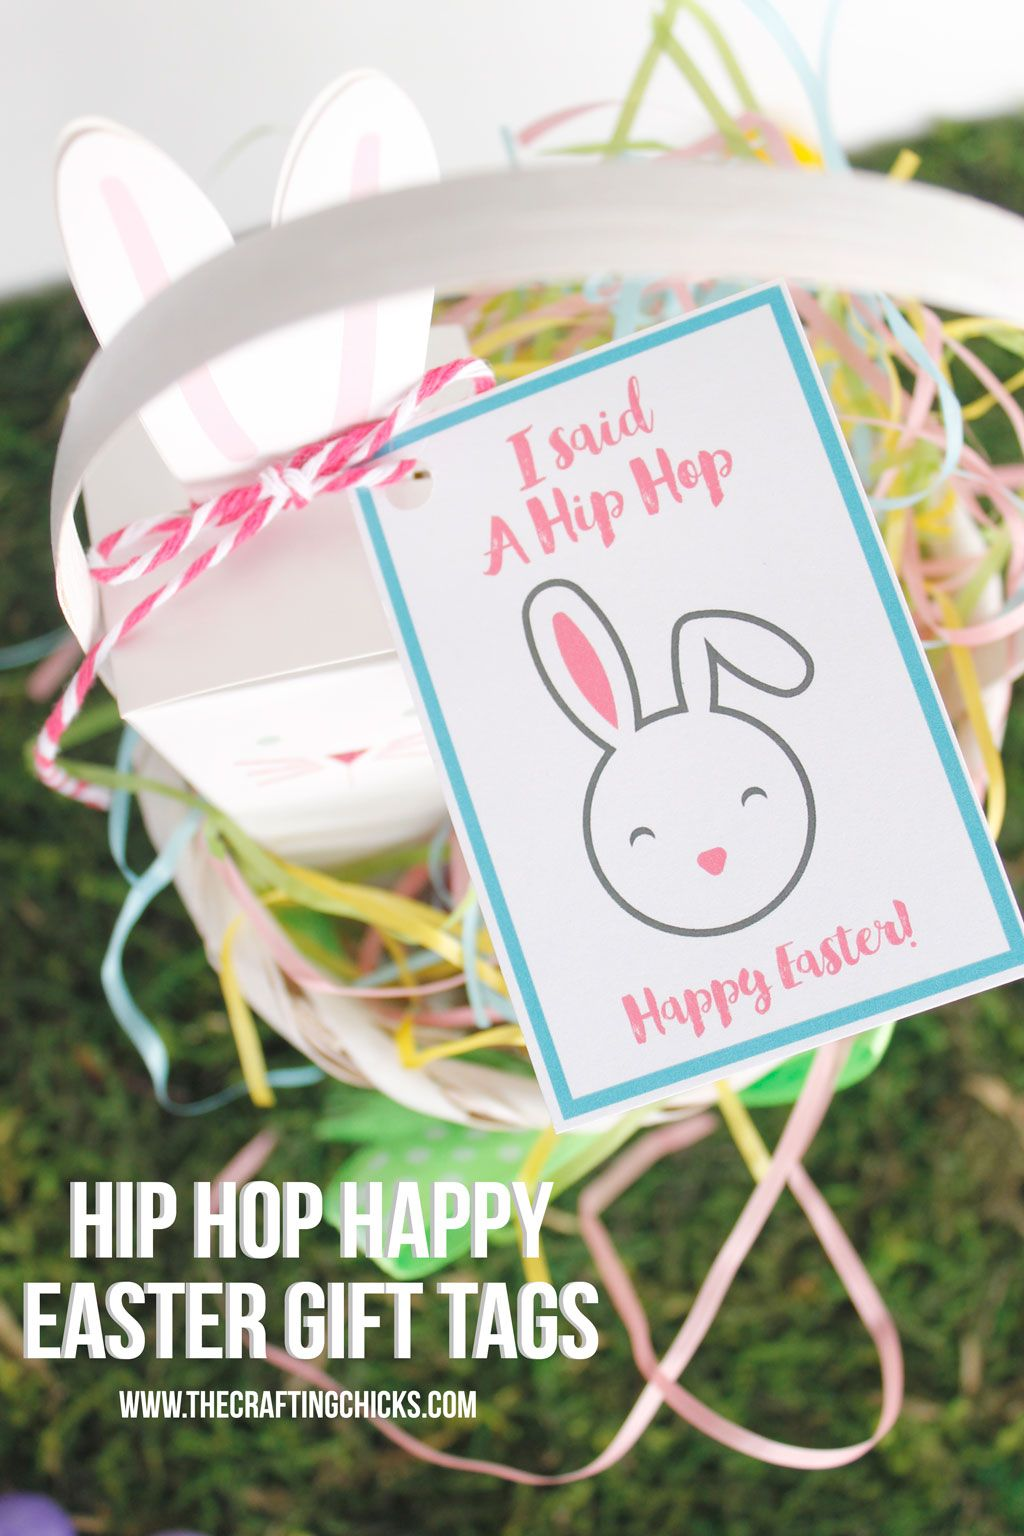 Hip hop happy easter gift tags happy easter hip hop and easter hip hop happy easter gift tags give your friends a fun easter treat and attach one of these adorable hip hop happy easter gift tags negle Image collections